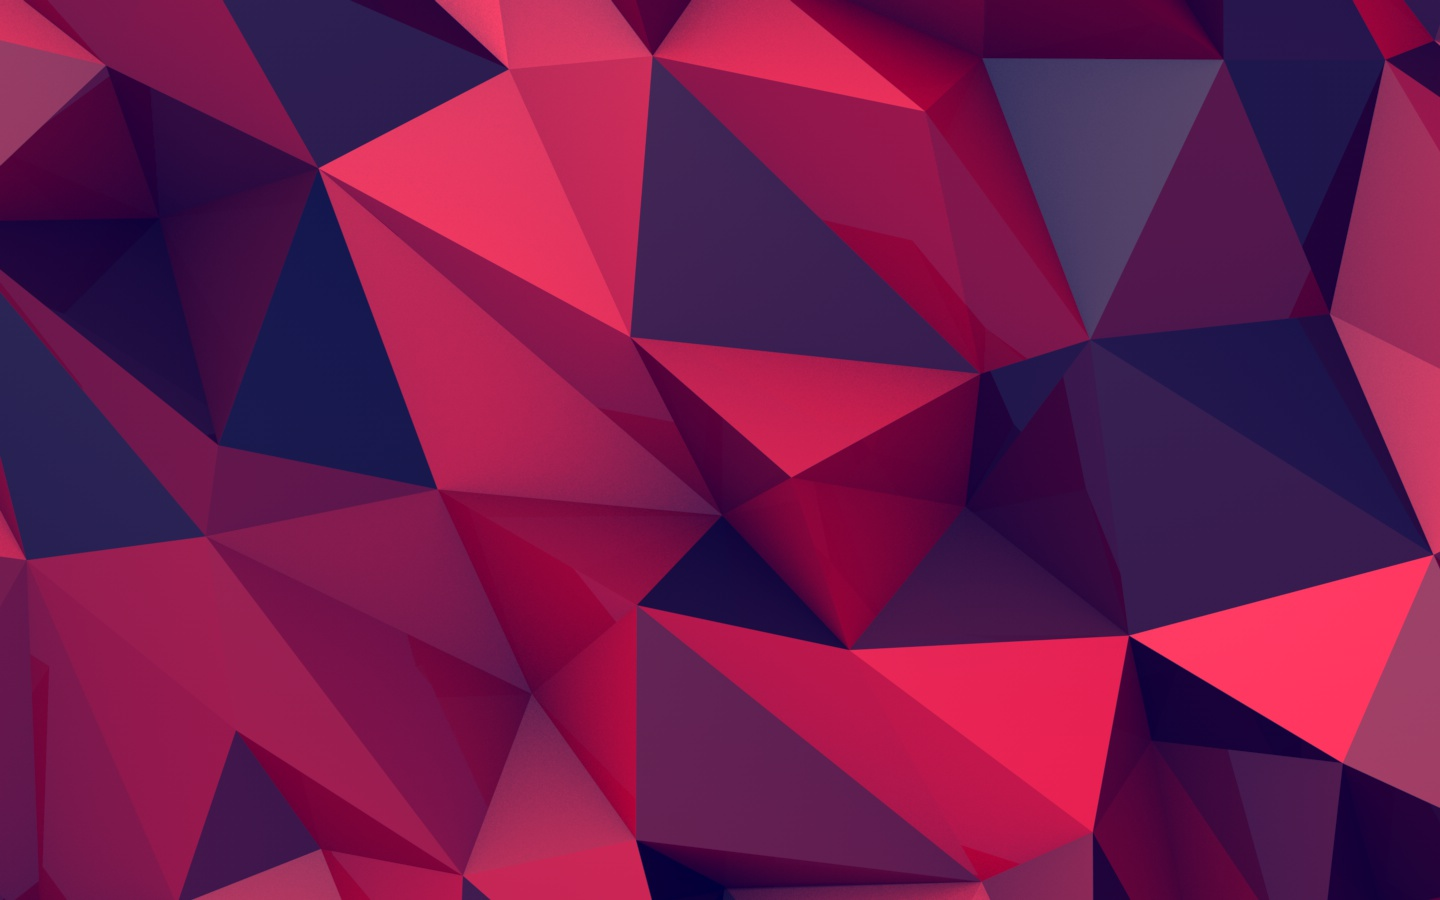 Download Low Poly HD Wallpapers for Free, HBC 333 Backgrounds